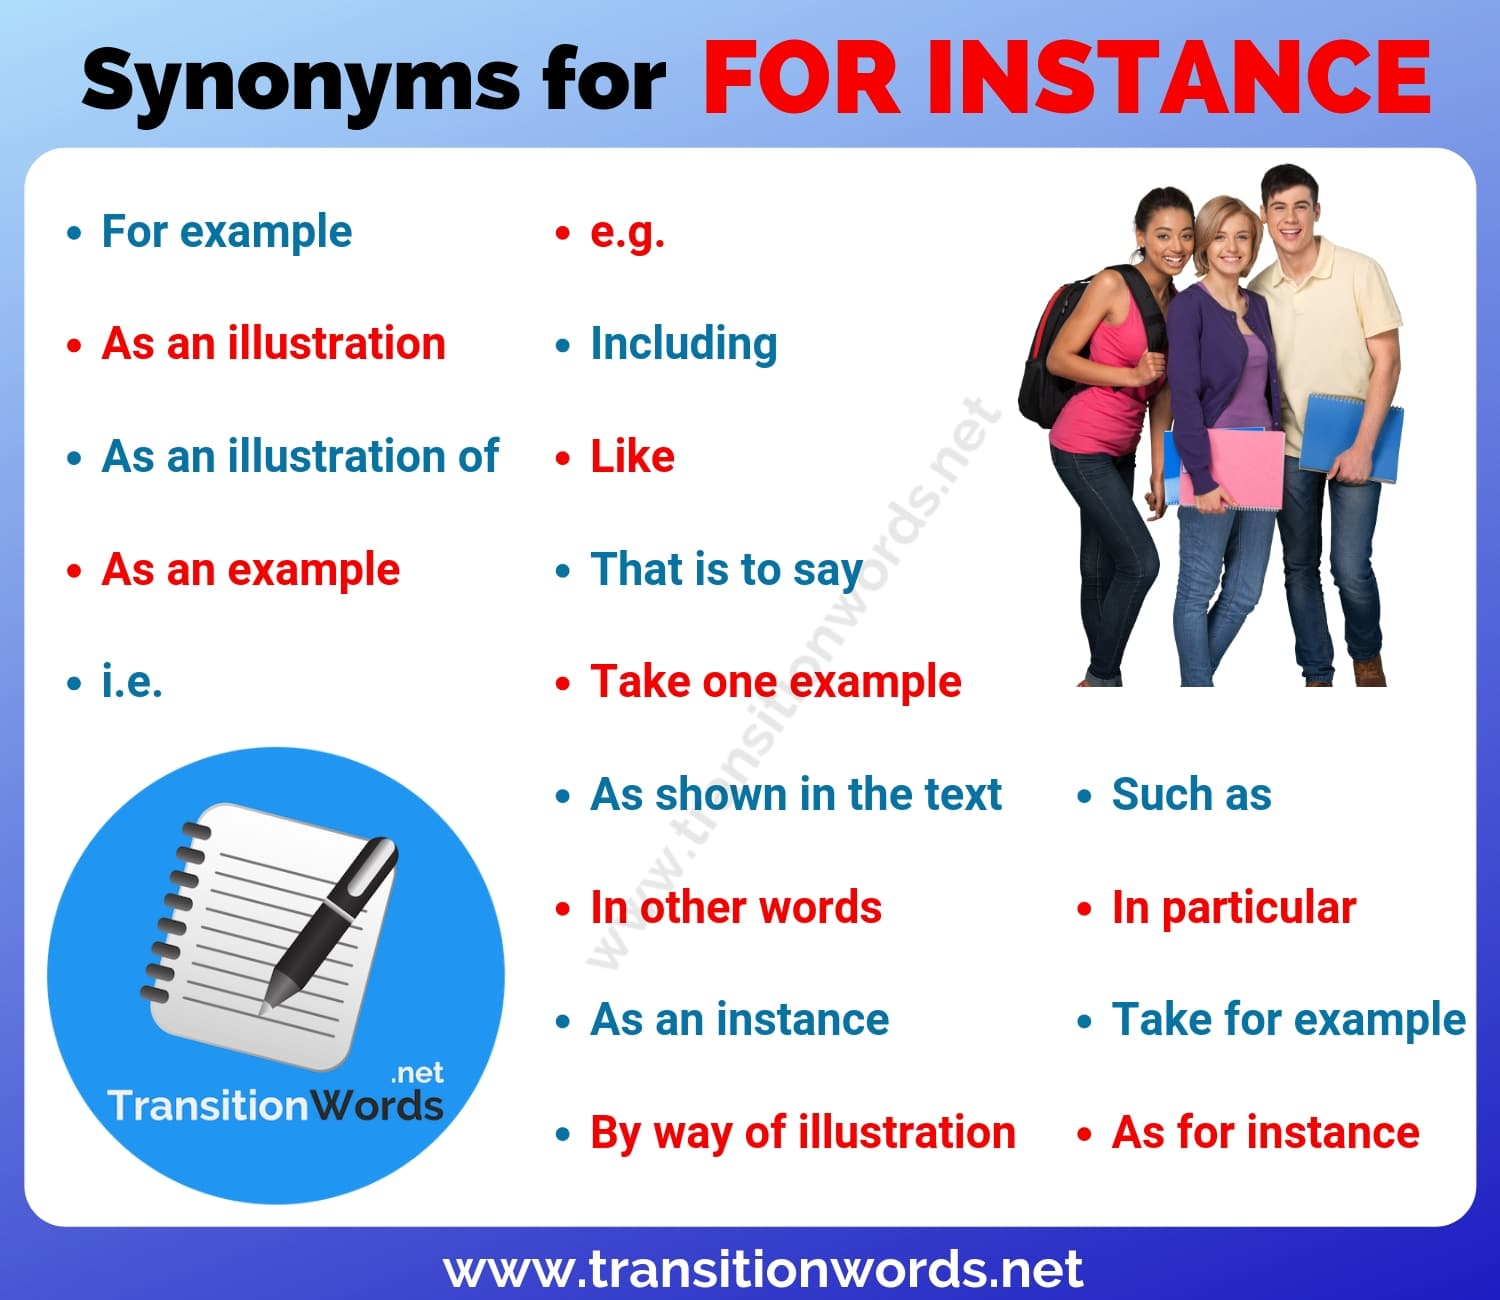 FOR INSTANCE Synonym: 18 Helpful Synonyms for For instance with Examples